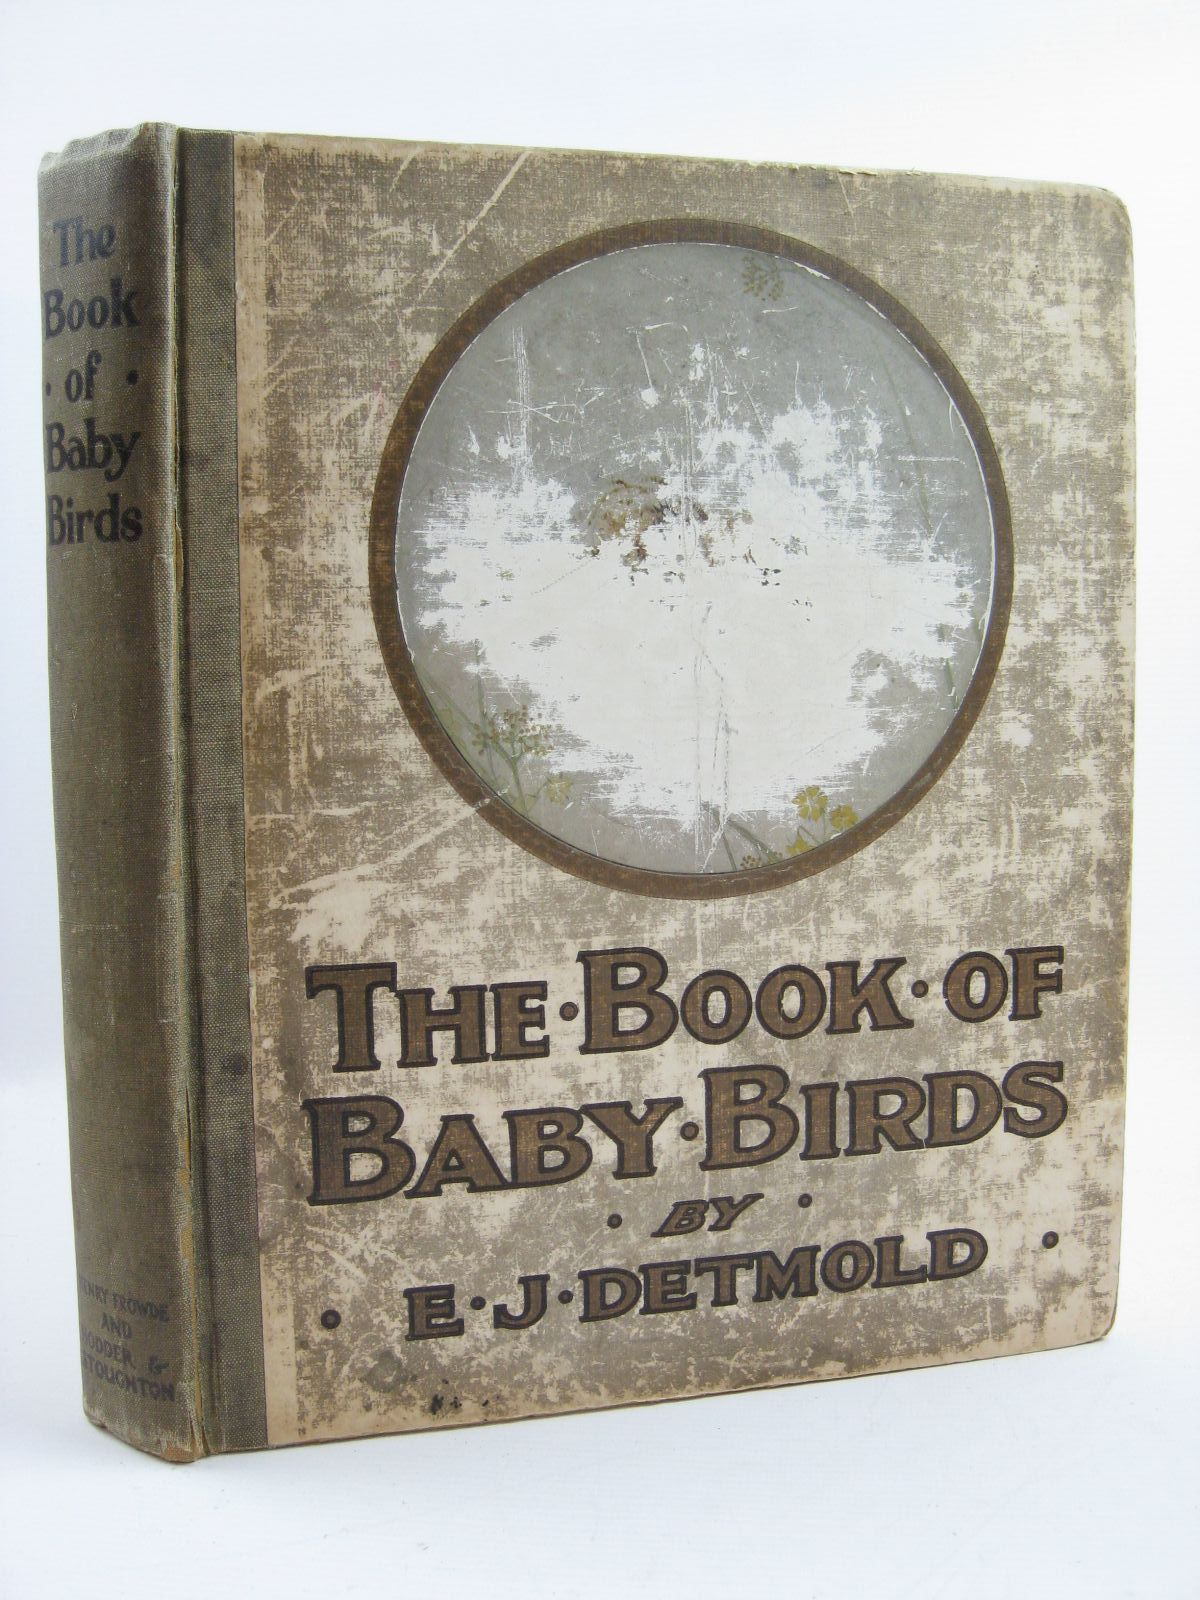 Photo of THE BOOK OF BABY BIRDS written by Dugdale, Florence E. illustrated by Detmold, Edward J. published by Henry Frowde, Hodder & Stoughton (STOCK CODE: 1507451)  for sale by Stella & Rose's Books